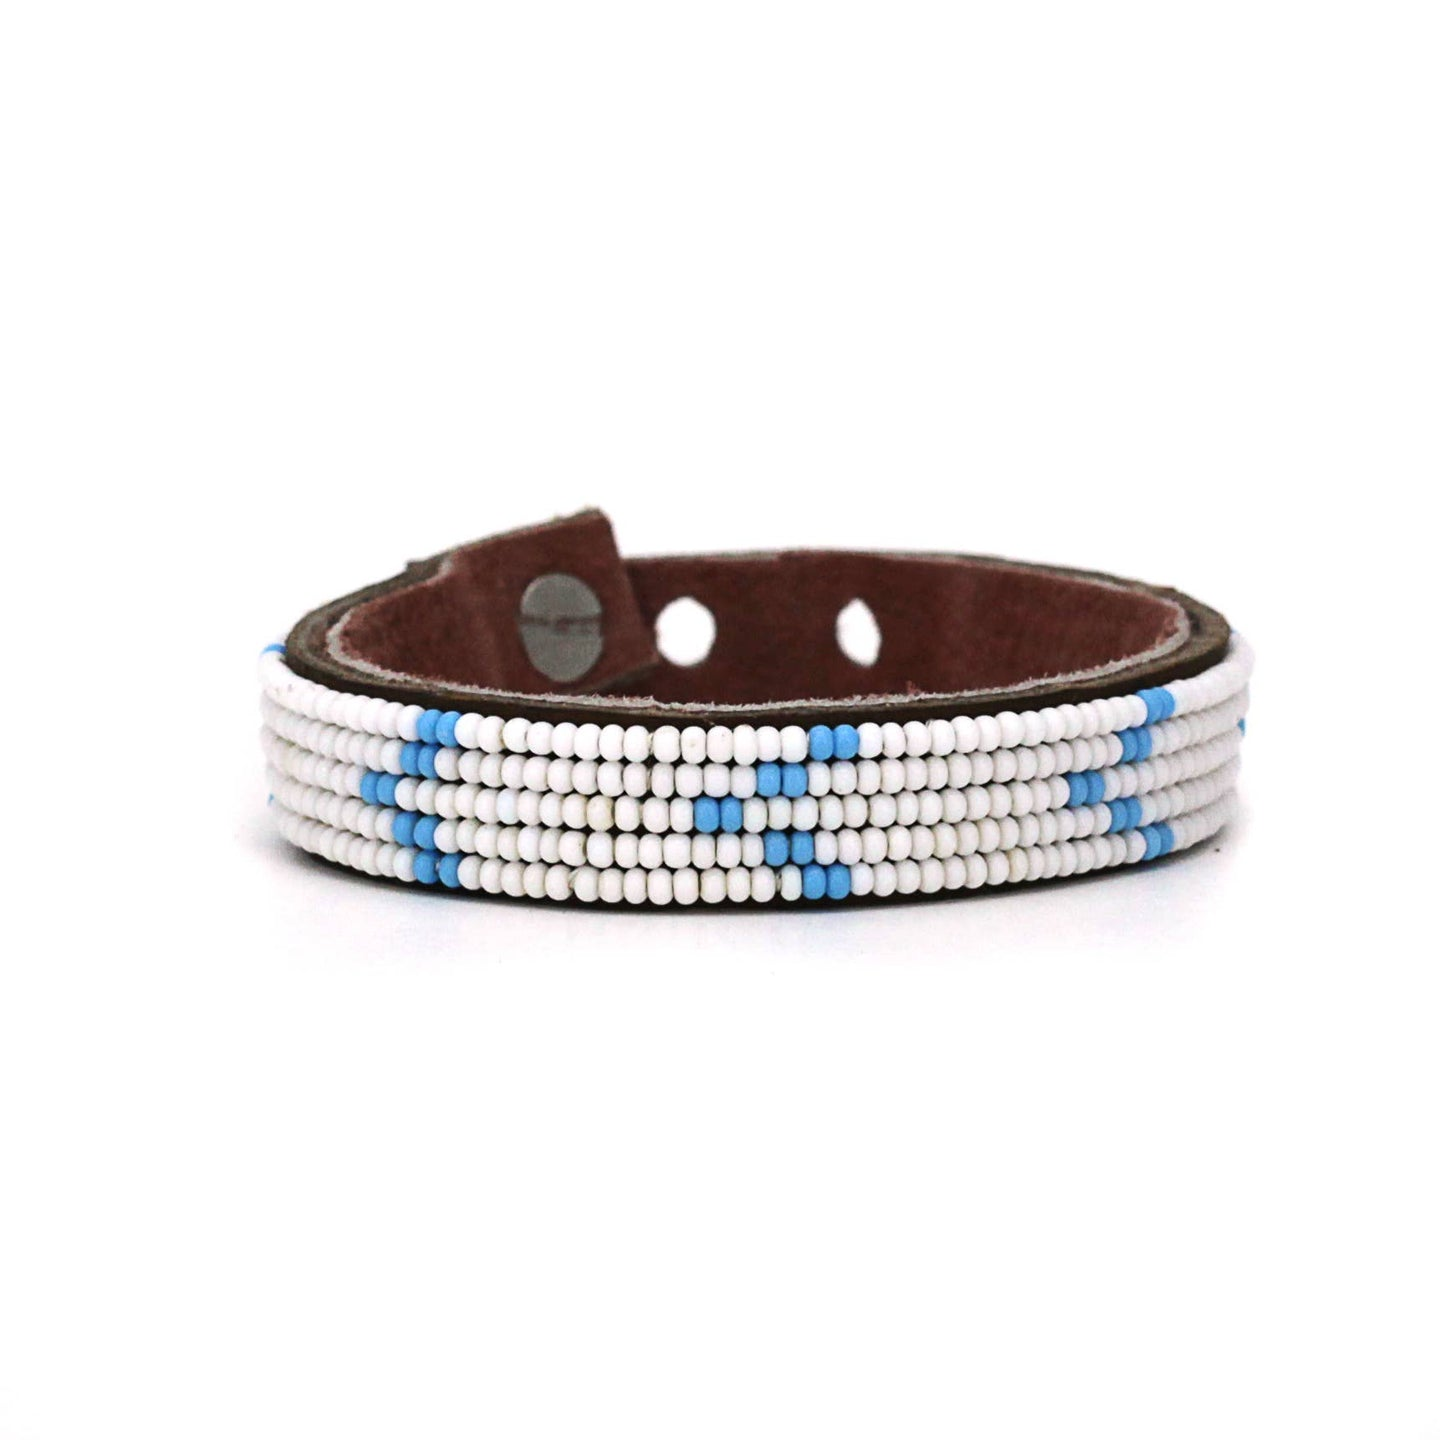 Swahili Coast - Small Light Blue Chevron Leather Cuff